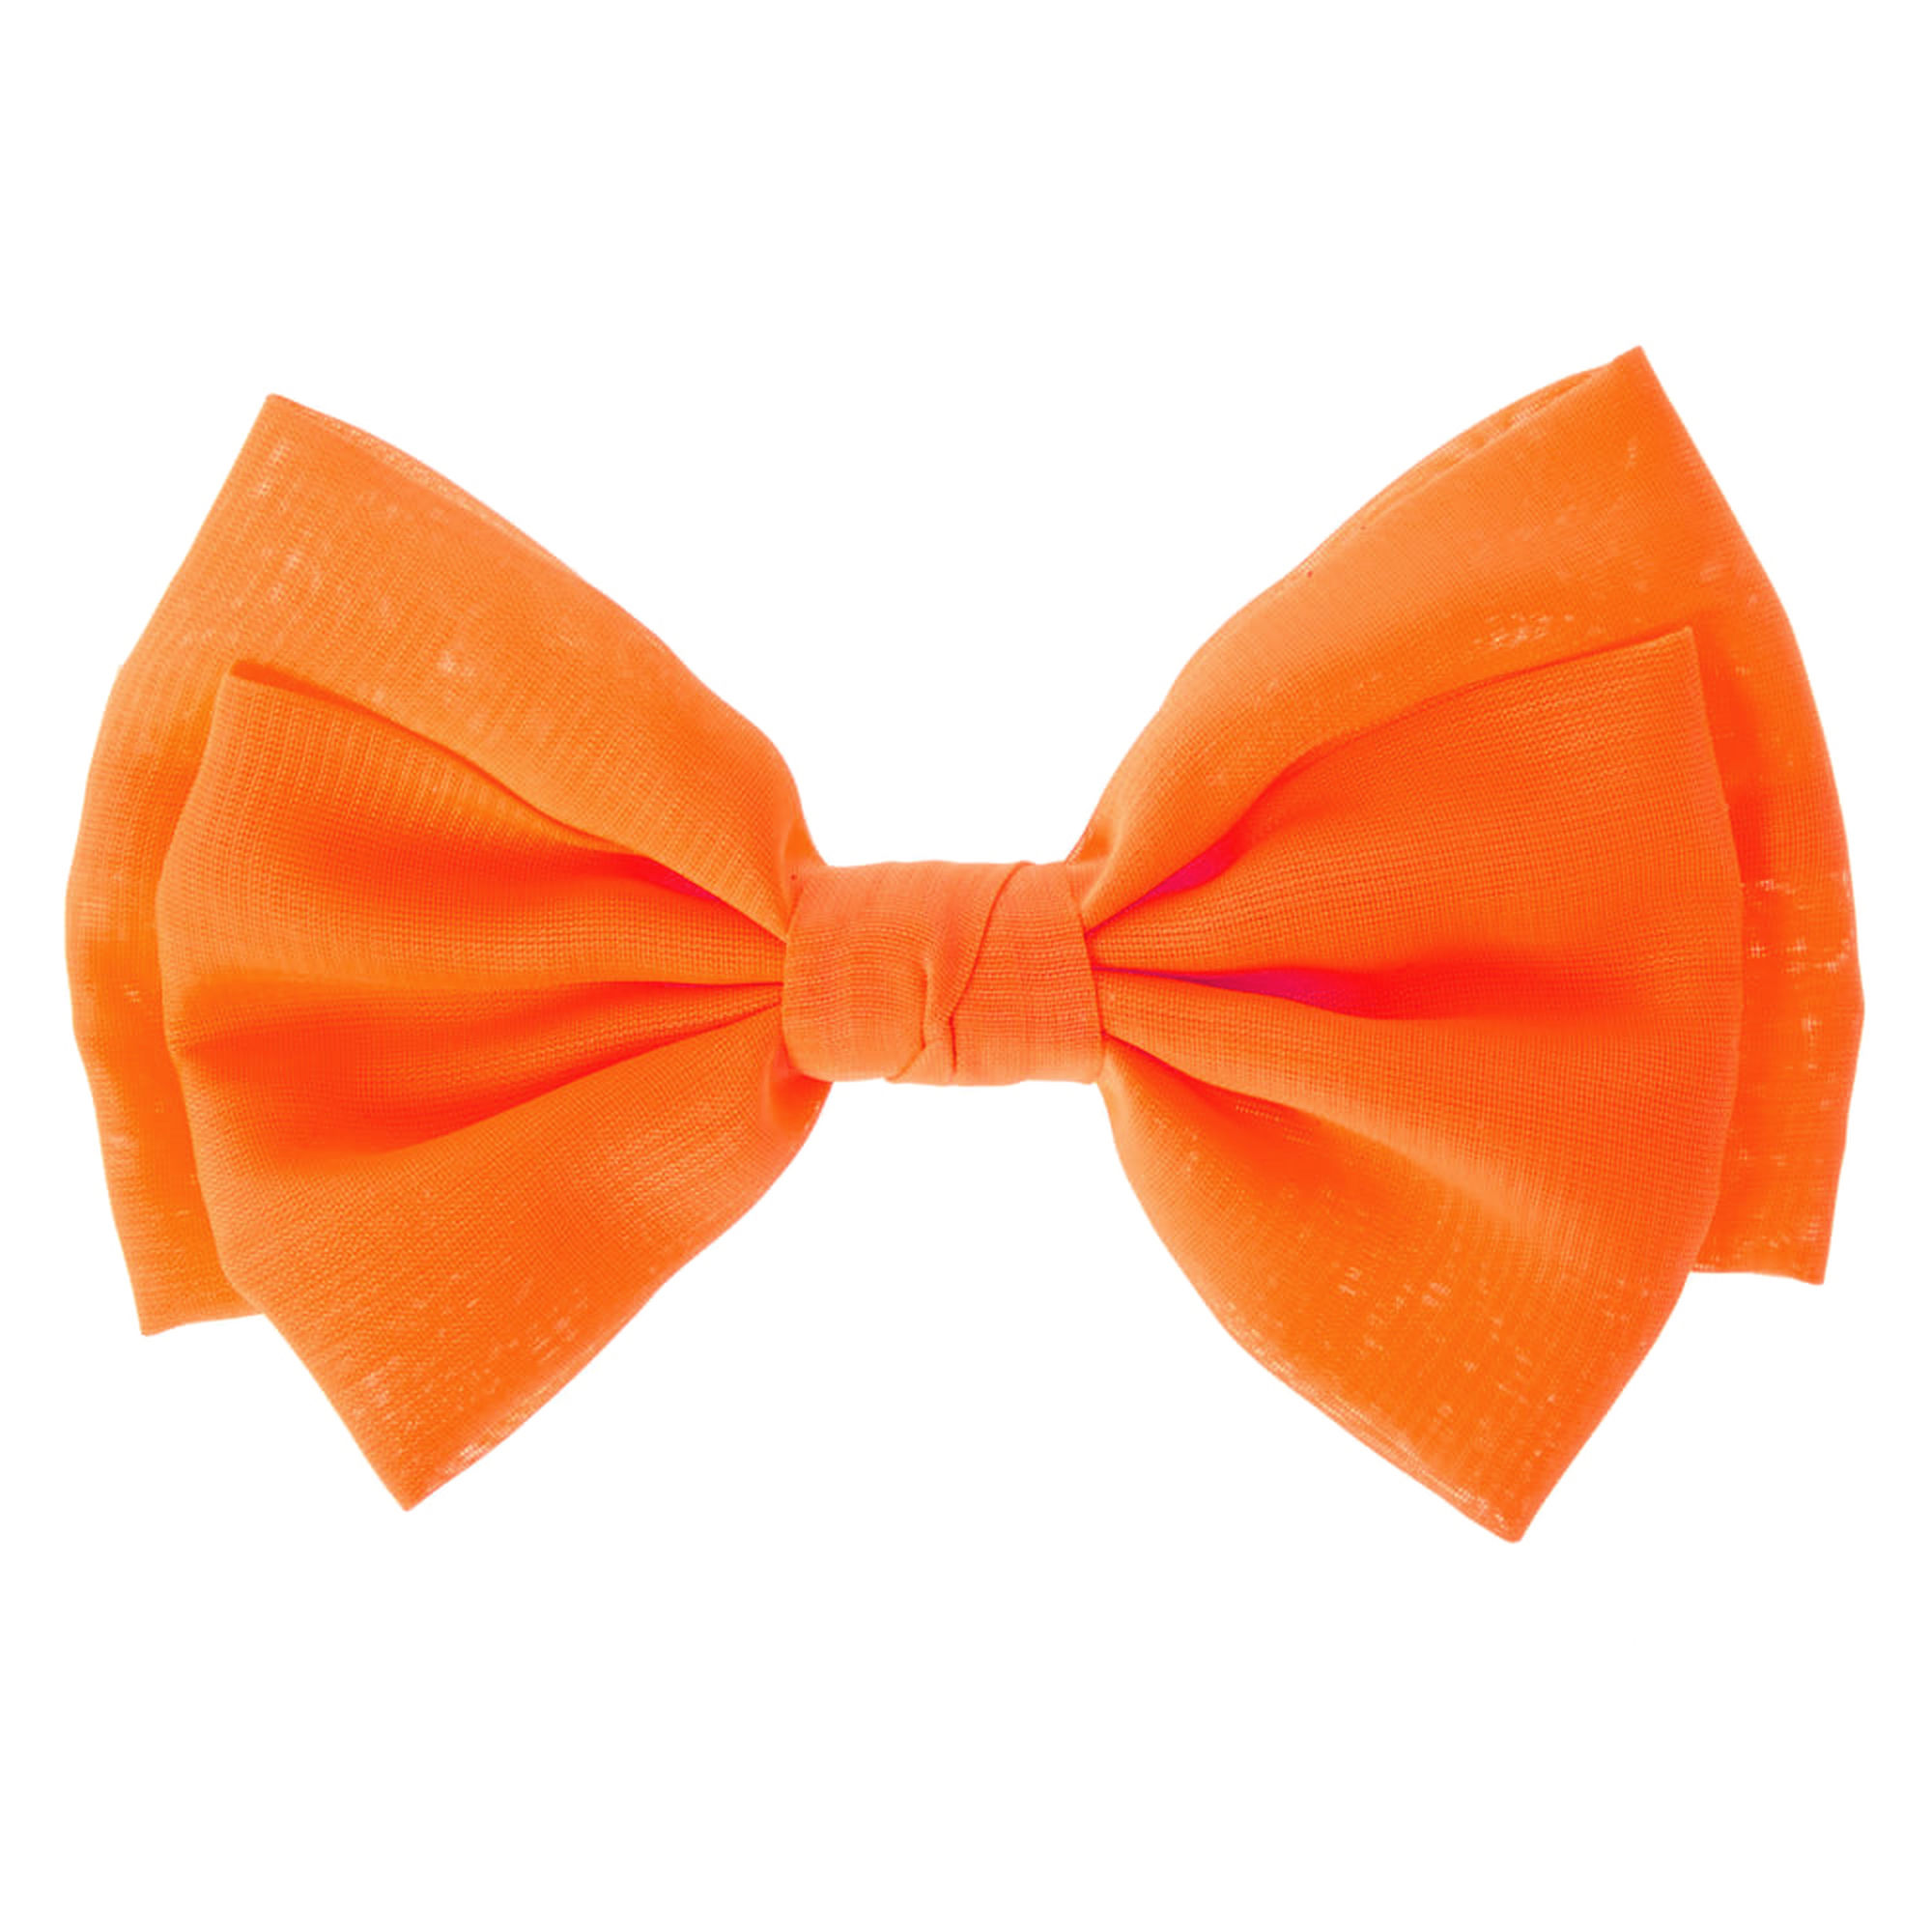 where can i buy a bow tie photo - 1